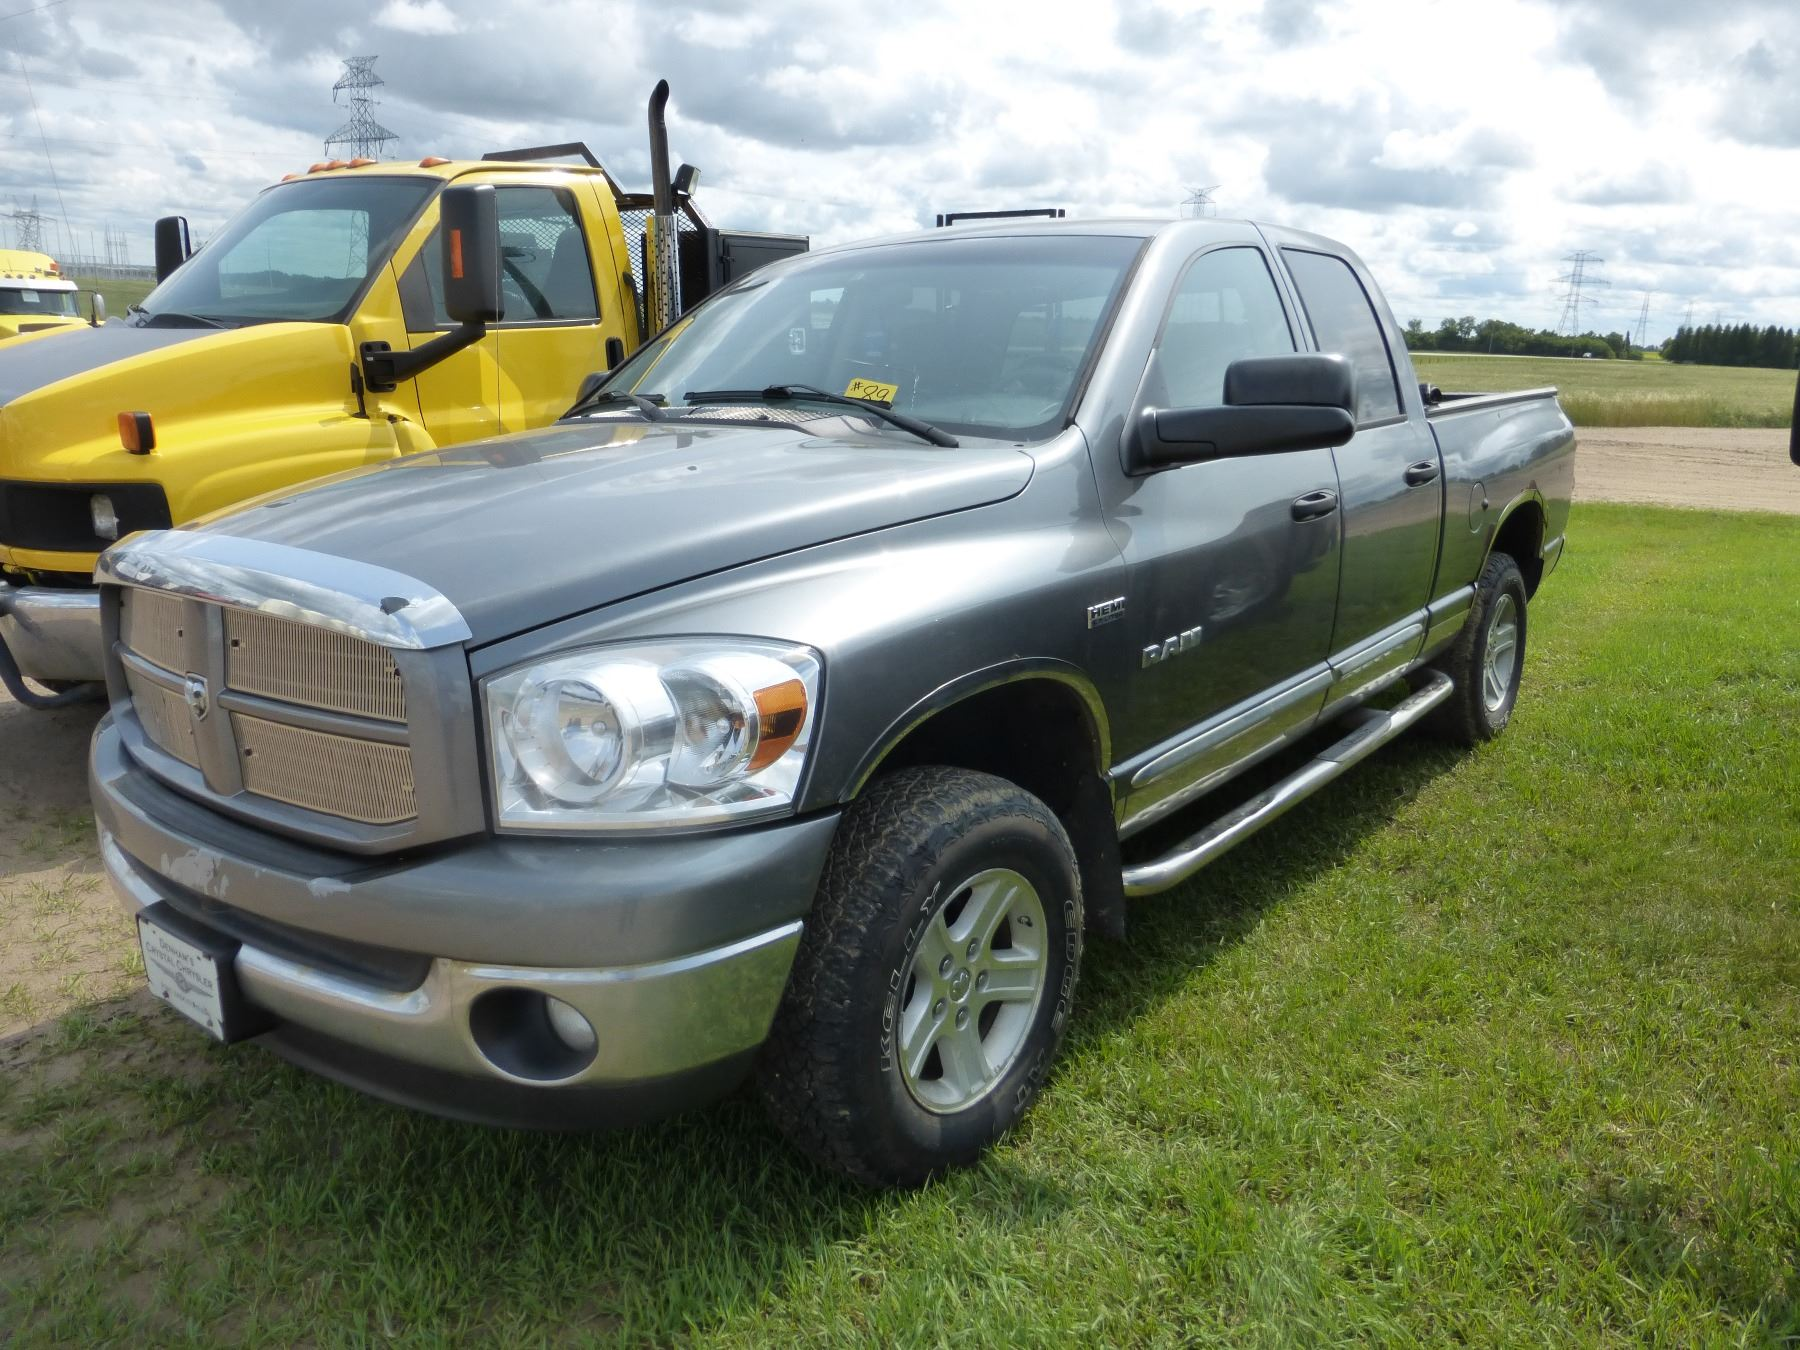 small resolution of image 1 2008 dodge ram 1500 4x4 crew cab truck